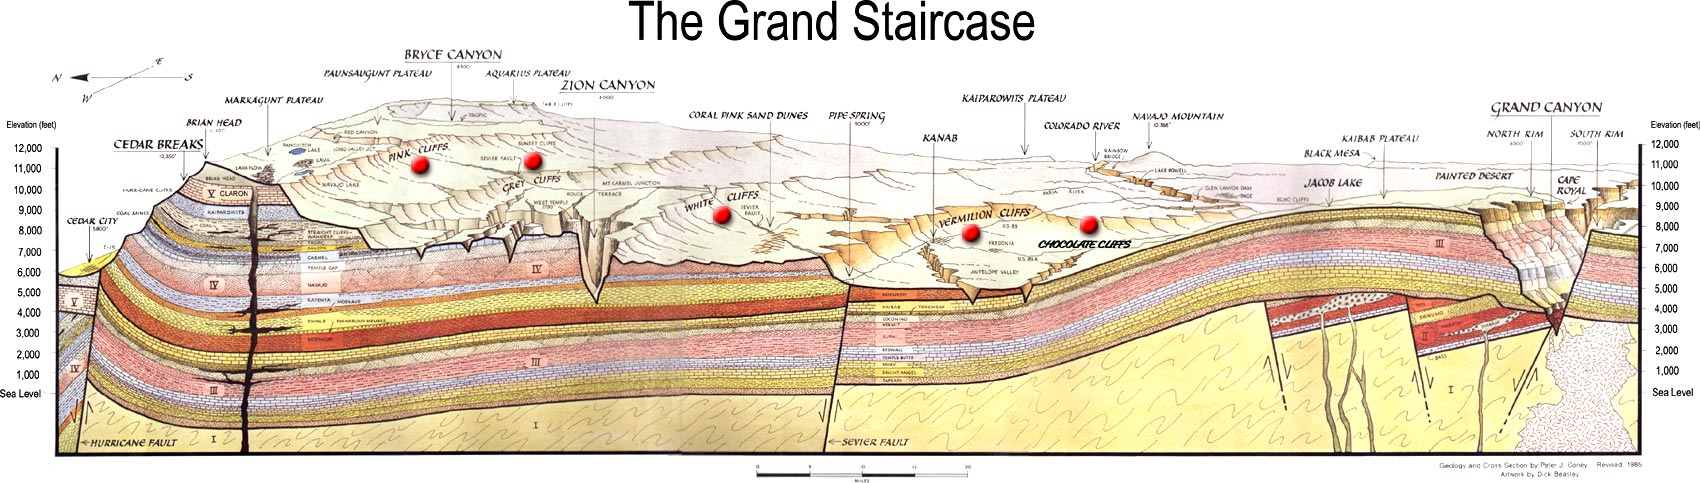 hight resolution of grand staircase big jpg